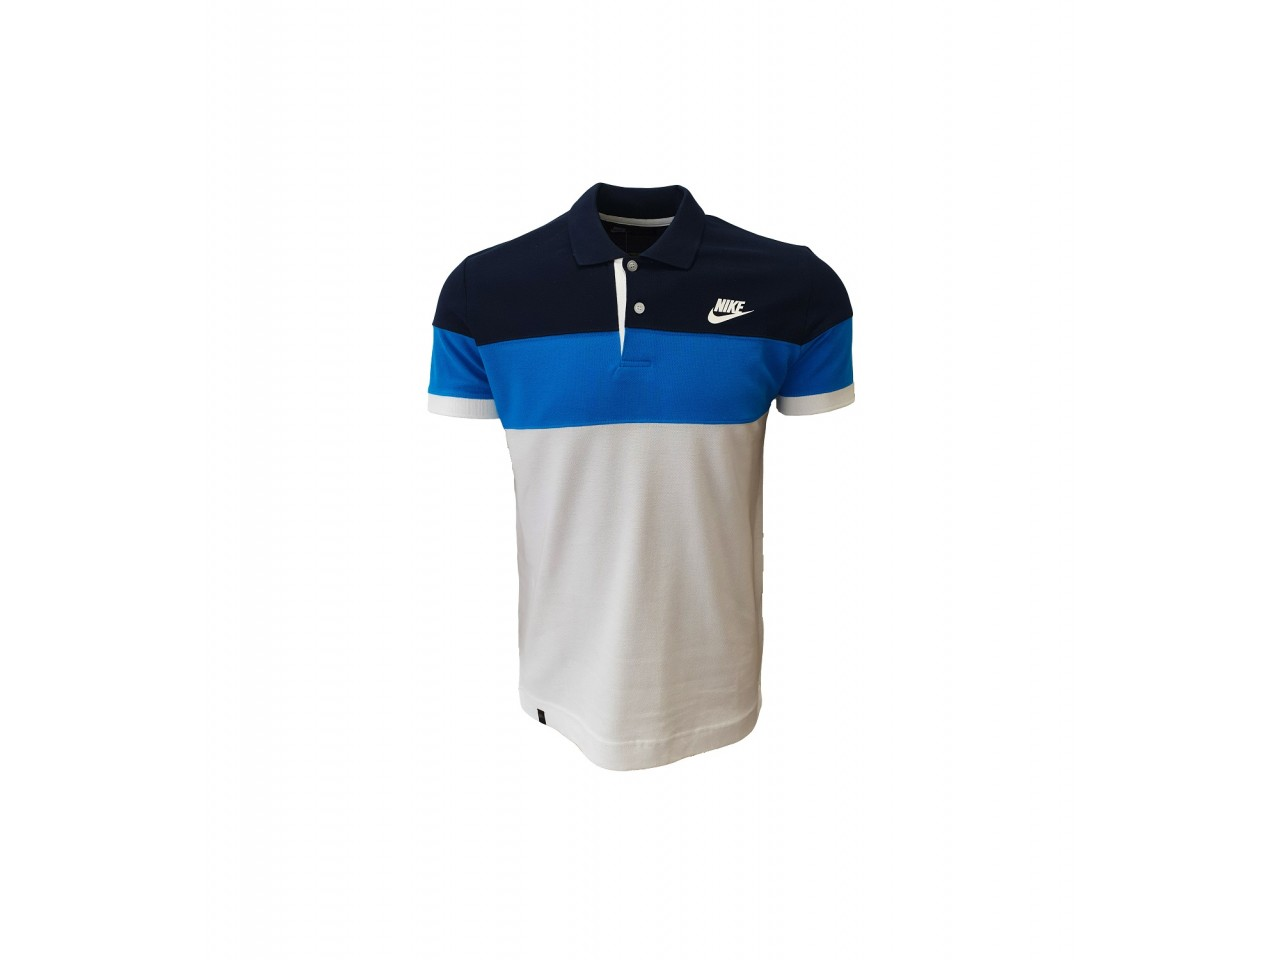 Nike Polo T-Shirt White Dark Blue Light Blue